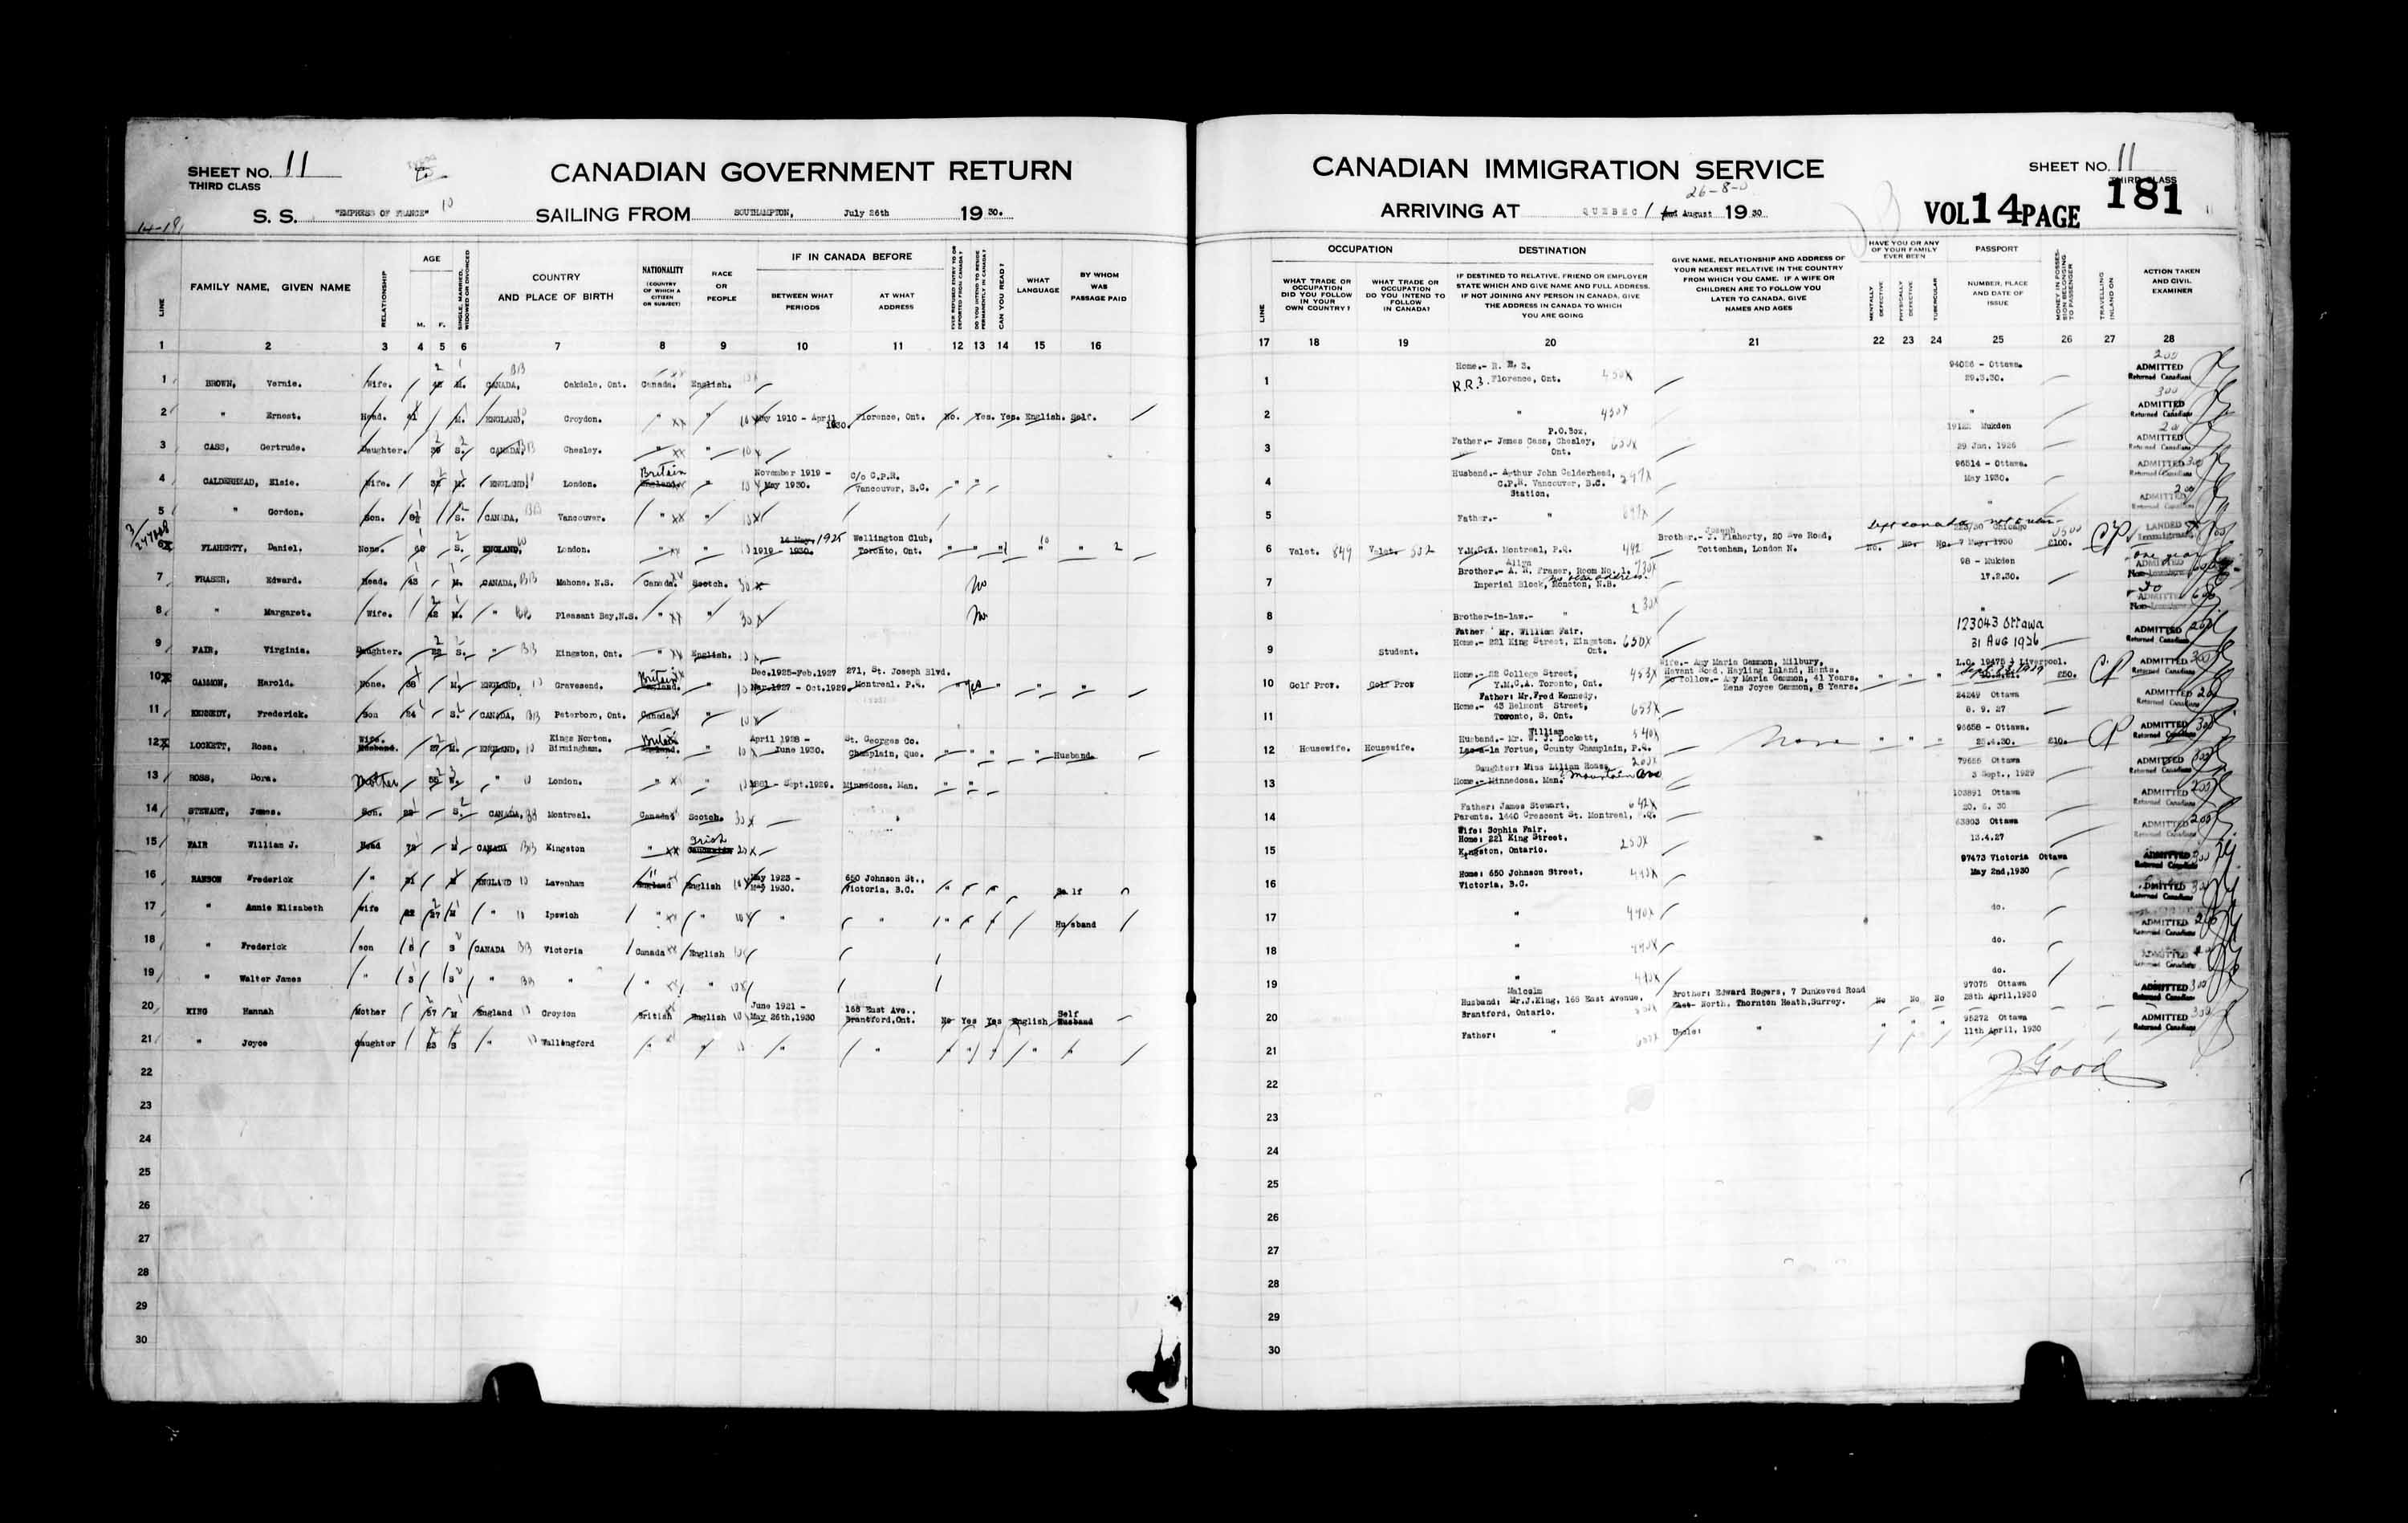 Title: Passenger Lists: Quebec City (1925-1935) - Mikan Number: 134839 - Microform: t-14766